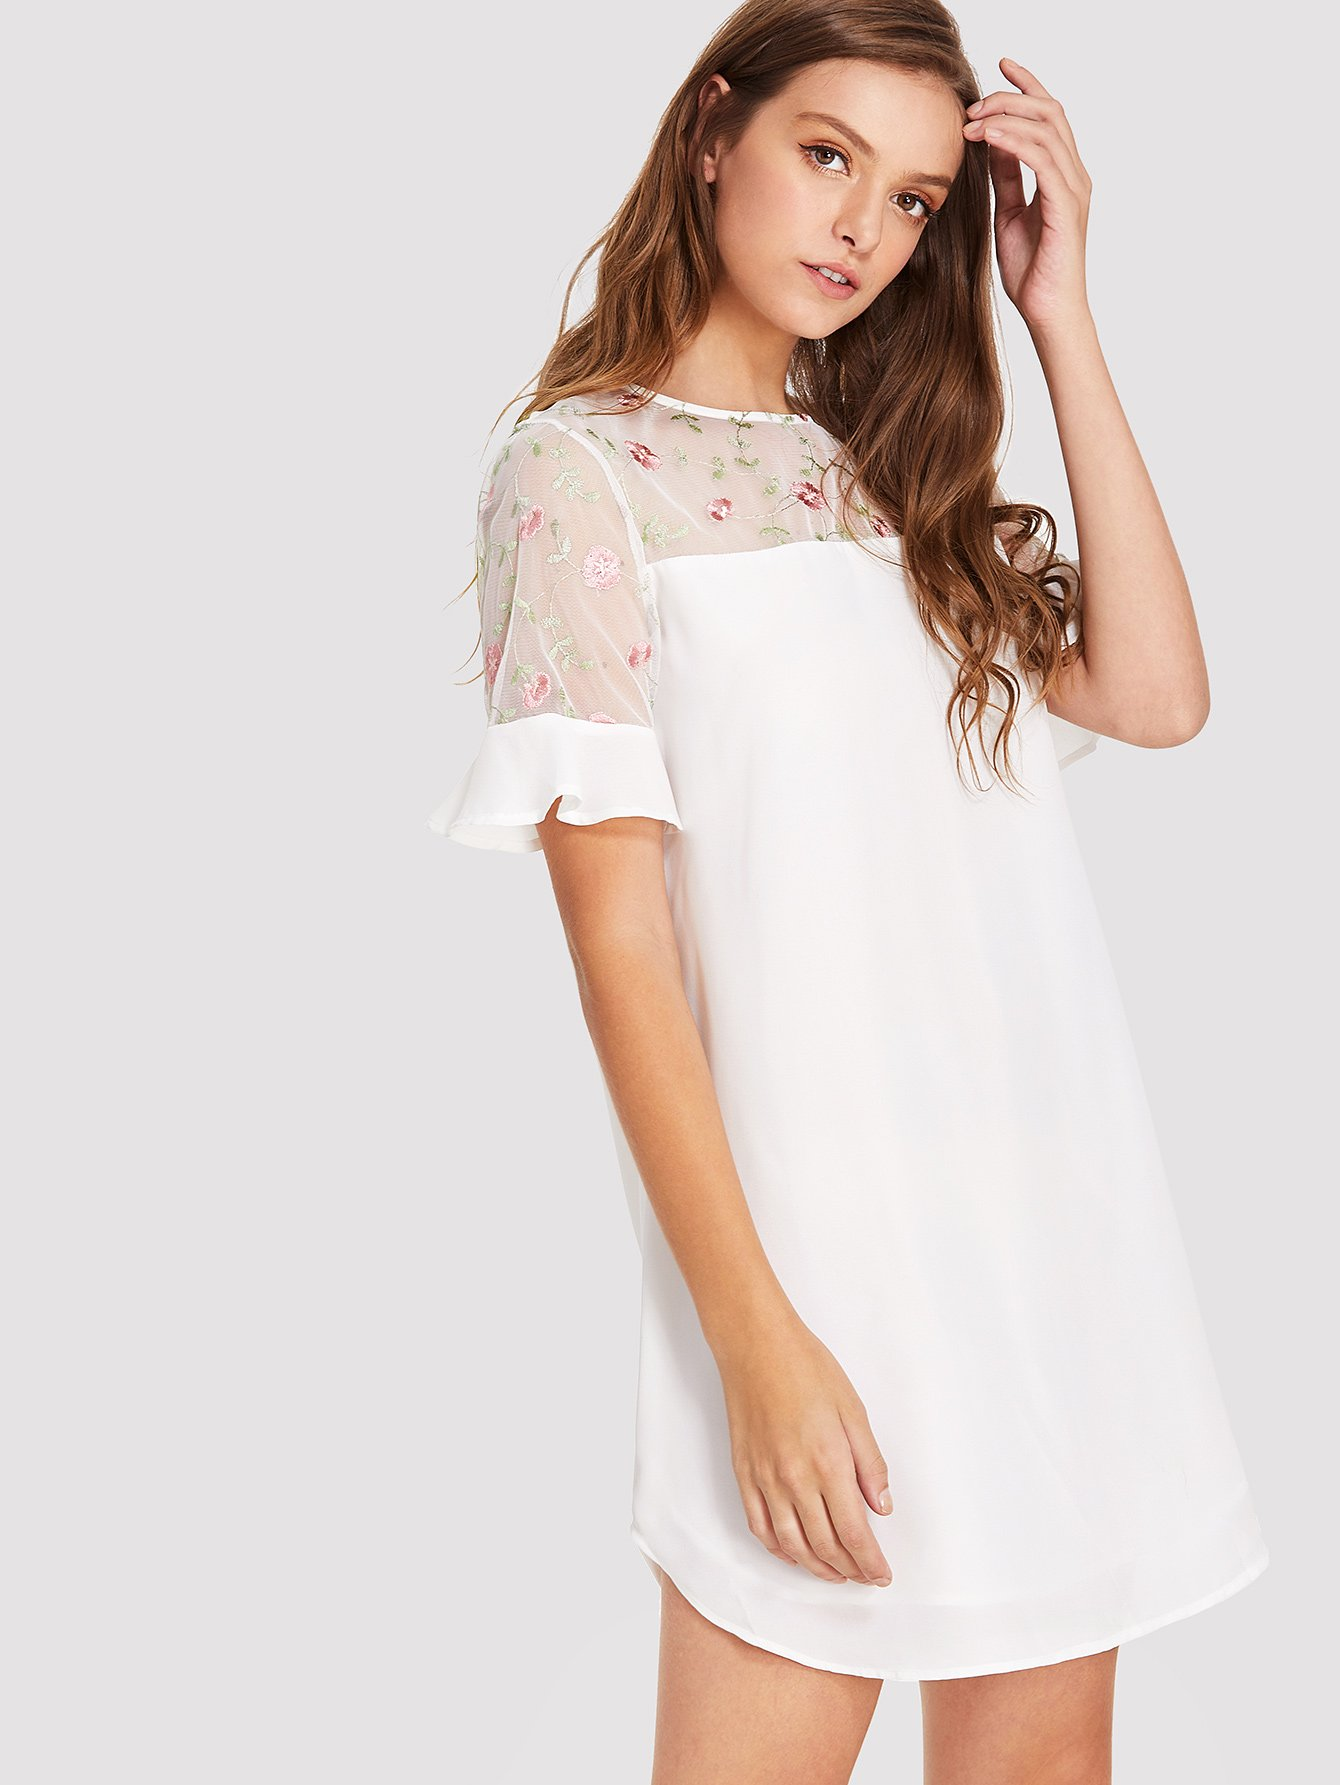 Floral Embroidered Mesh Yoke Ruffle Cuff Dress ixth50p10 to 247